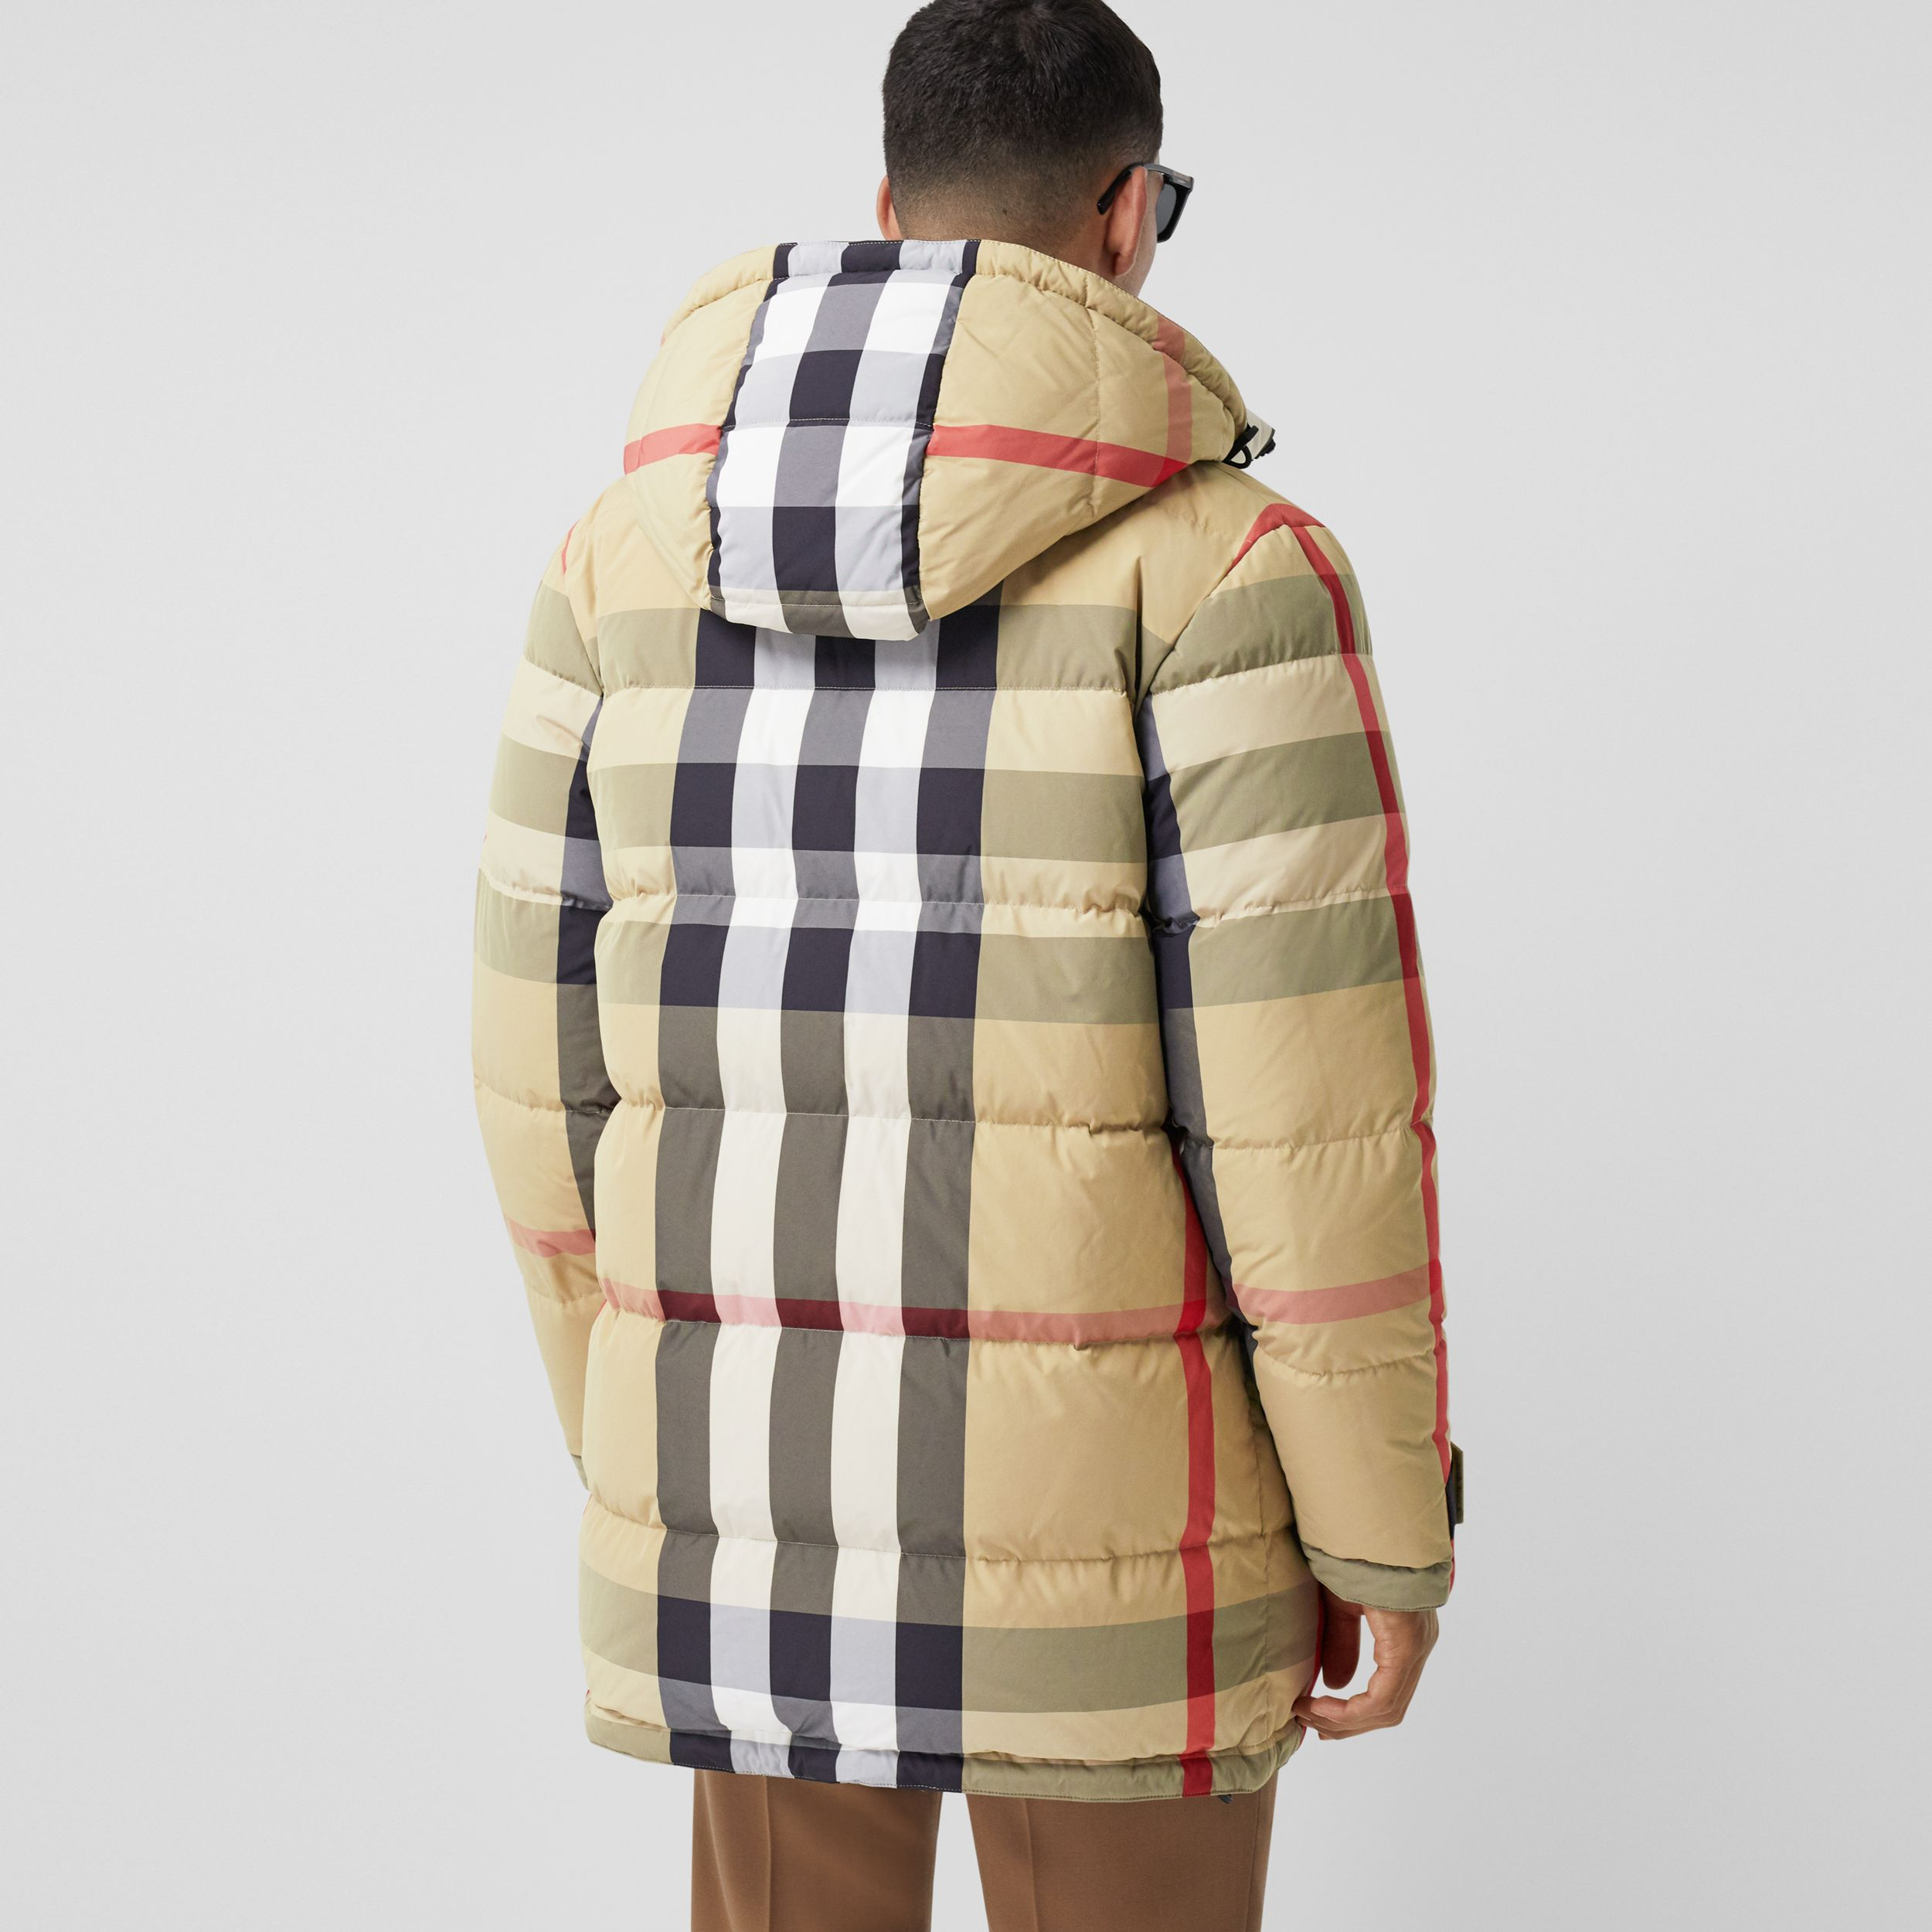 Reversible Check Recycled Nylon Puffer Jacket in Archive Beige/olive - Men | Burberry - 3